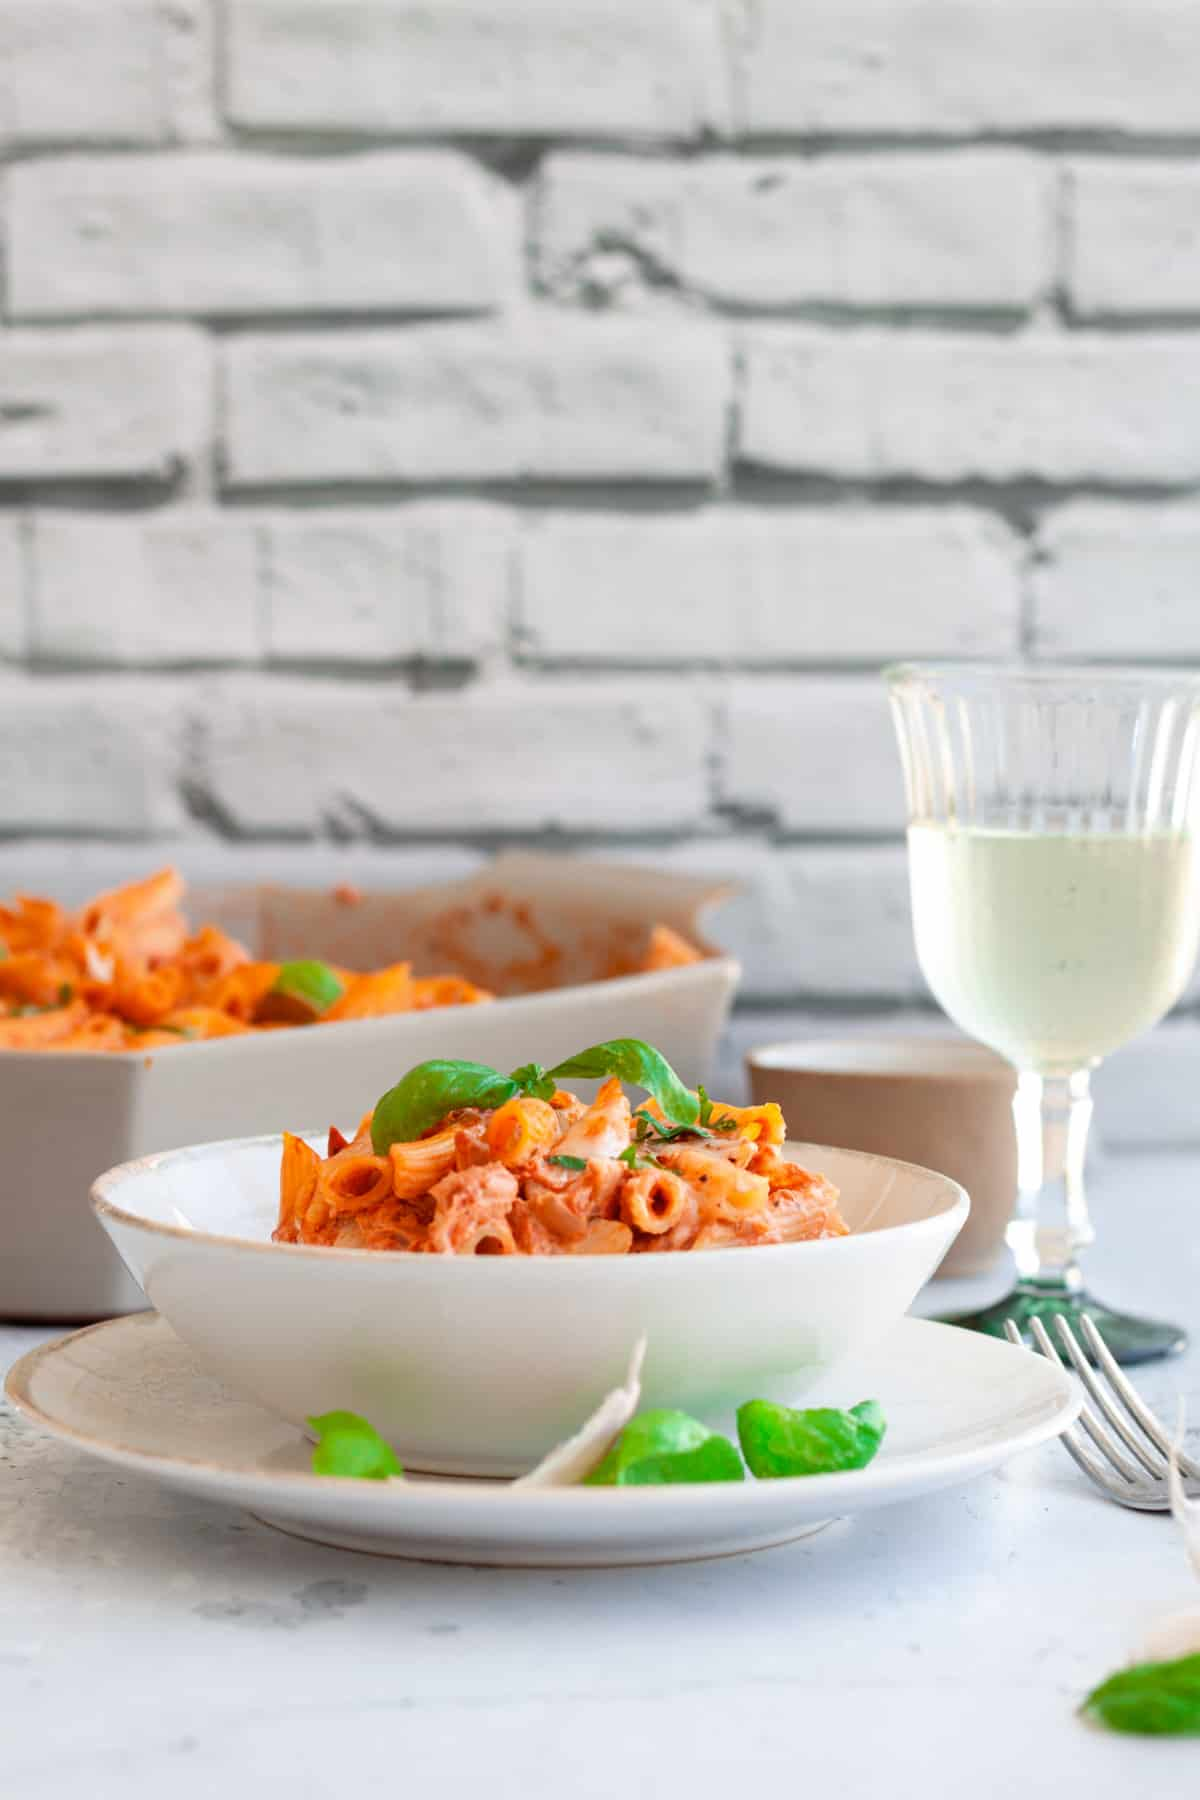 A single serving of Baked Goat Cheese Pasta in a white plate next to fresh basil leaves and a glass of wine.